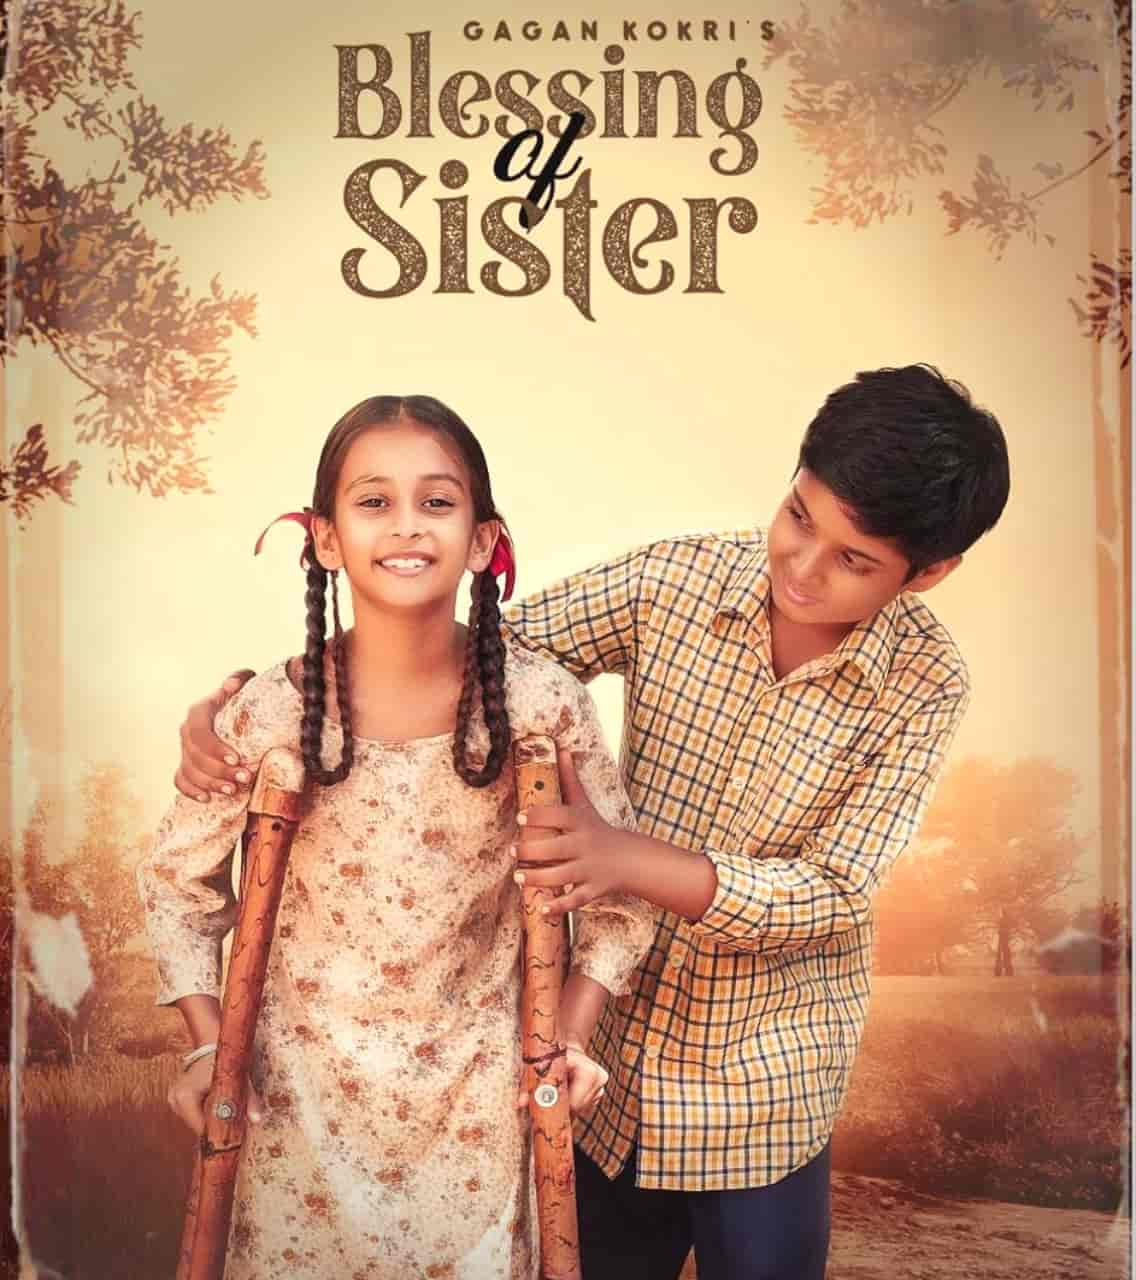 Blessings Of Sister Punjabi Song Image Features Gagan Kokri